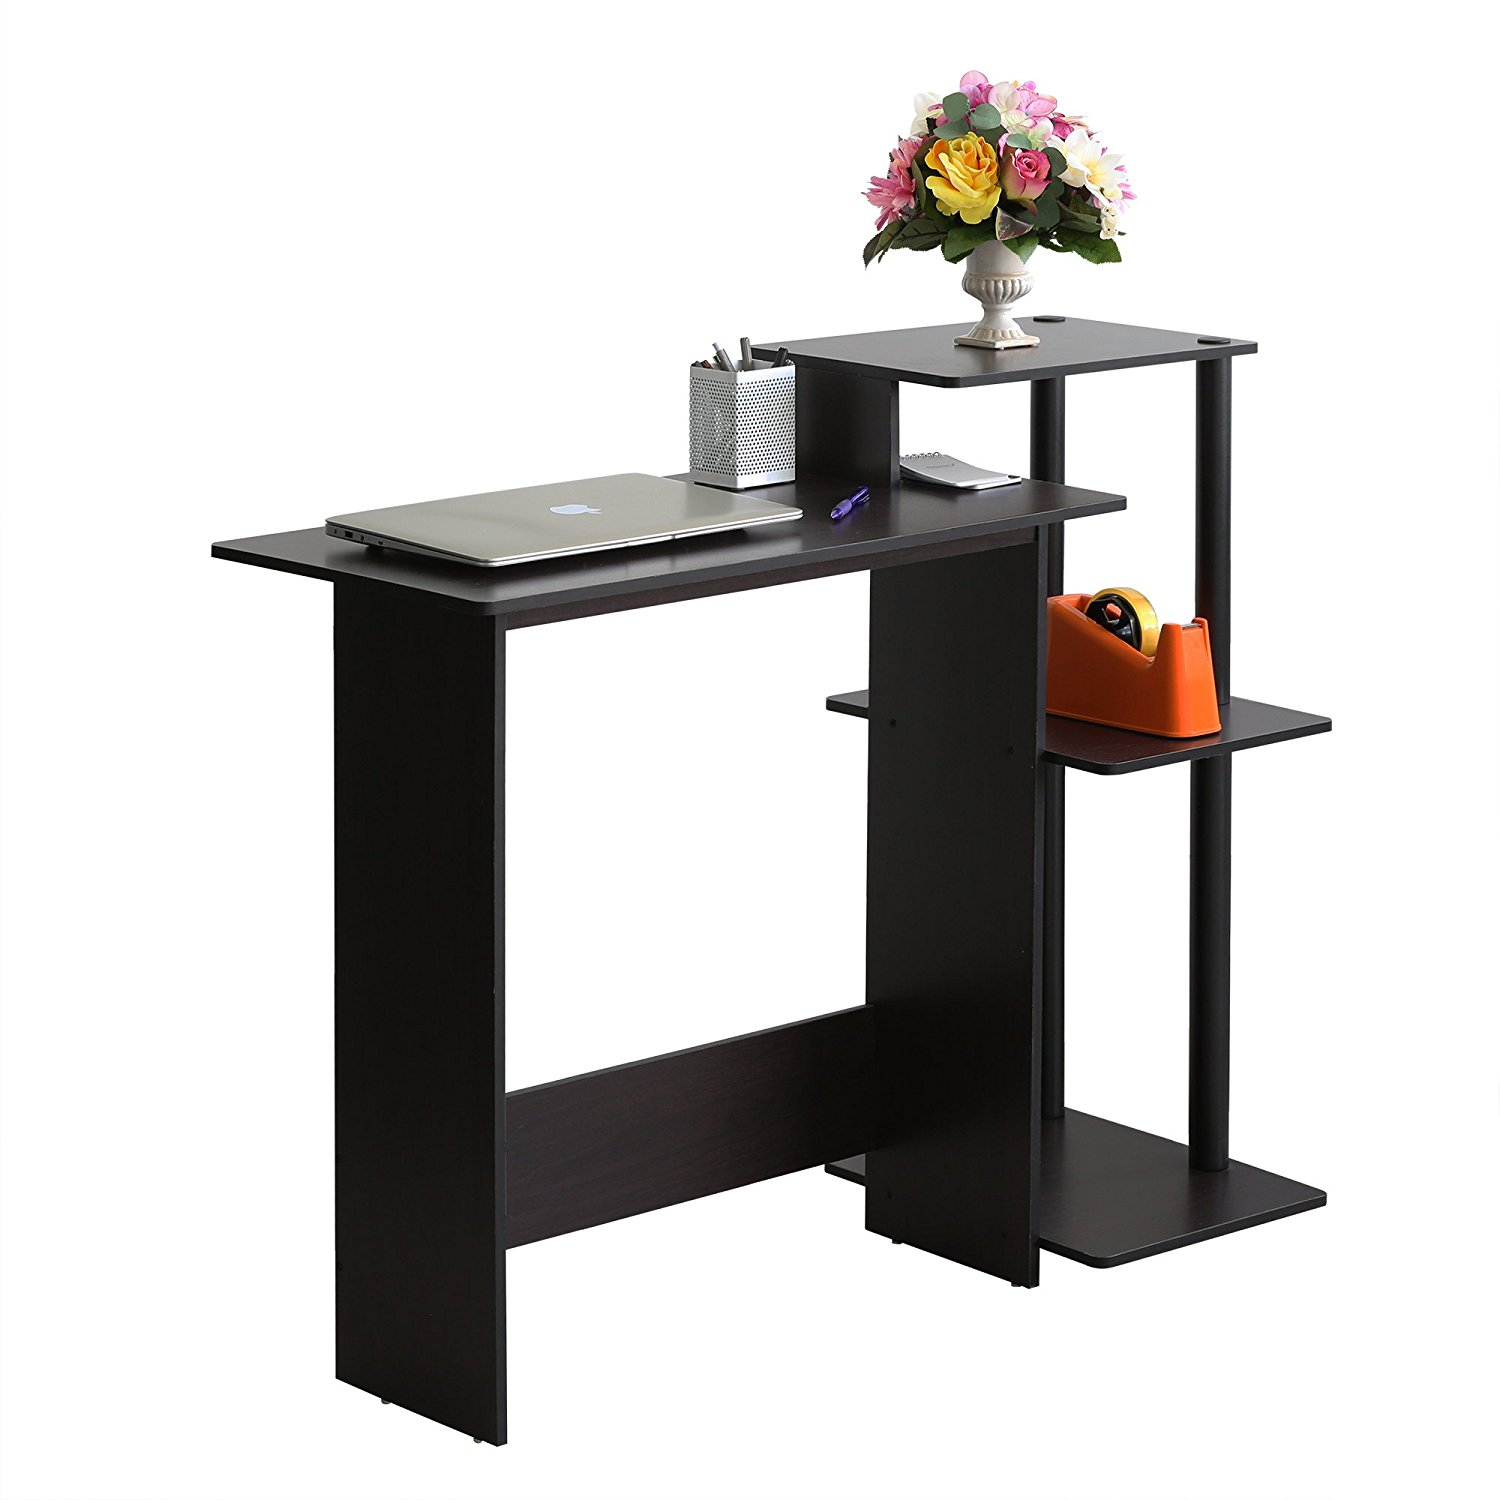 Cheap Compact Computer Desk Find Compact Computer Desk Deals On Line At Alibaba Com